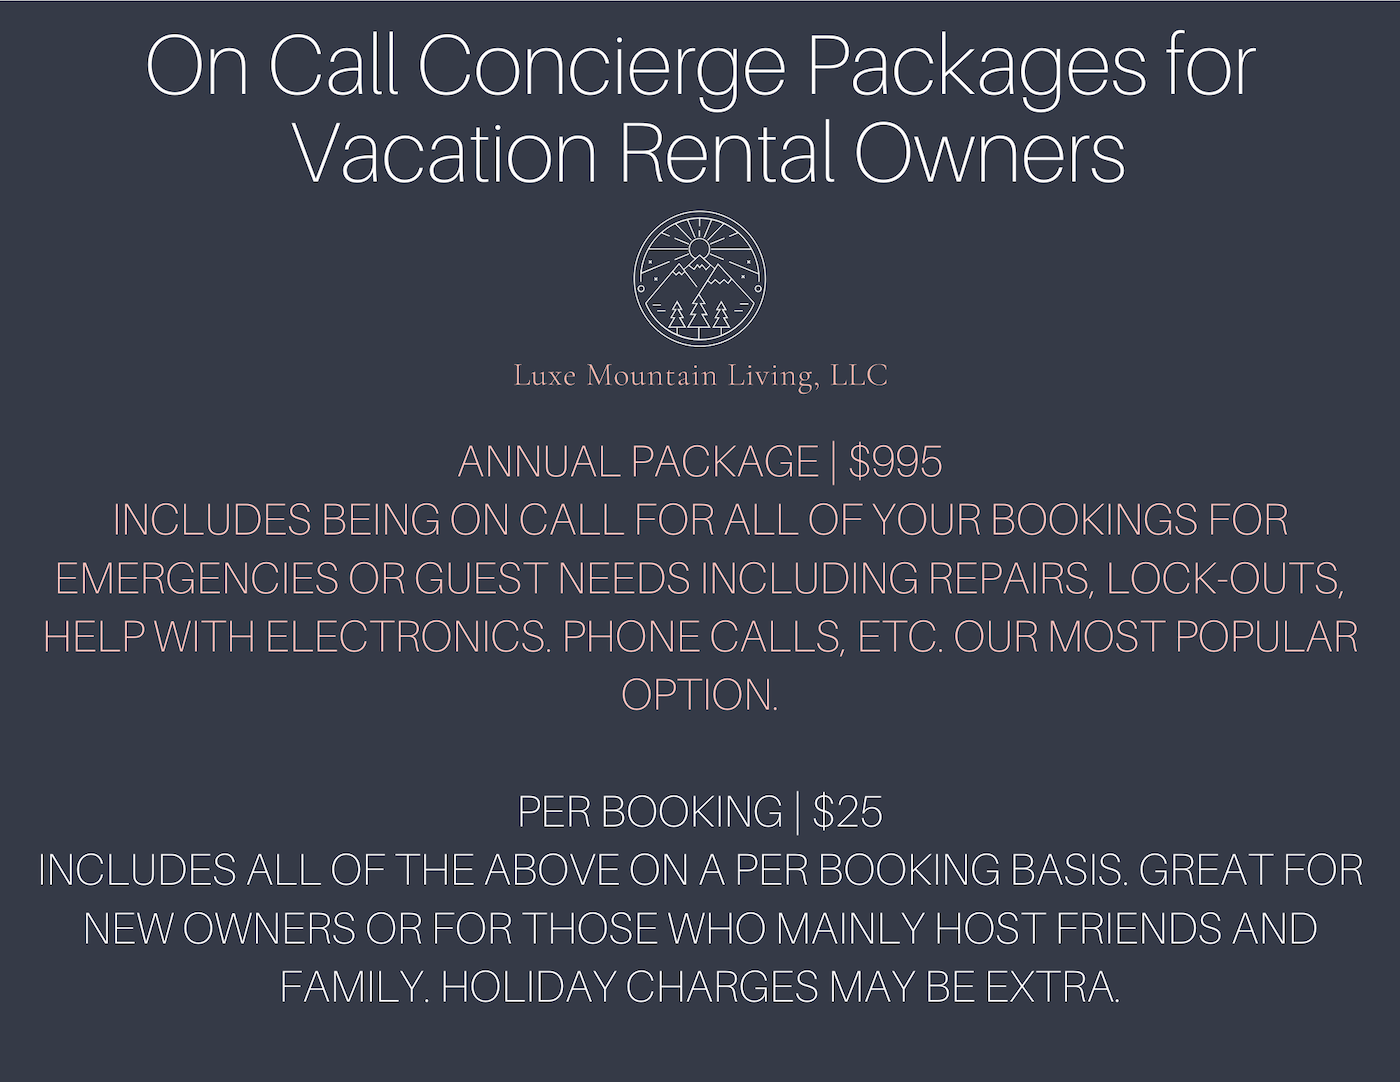 On Call Concierge Packages for Vacation Rental Owners. Luxe Mountain Living, LLC. Annual package is $995 per year, includes being on call for all of your bookings for emergencies or guest needs including repairs, lock-outs, help with electronics, phone calls, etc. our most popular option. Per booking price is $25 per booking, includes being on call for all of your bookings for emergencies or guest needs including repairs, lock-outs, help with electronics, phone calls, etc. Great for new homeowners or for those who mainly host friends and family. Holiday charges may be extra.